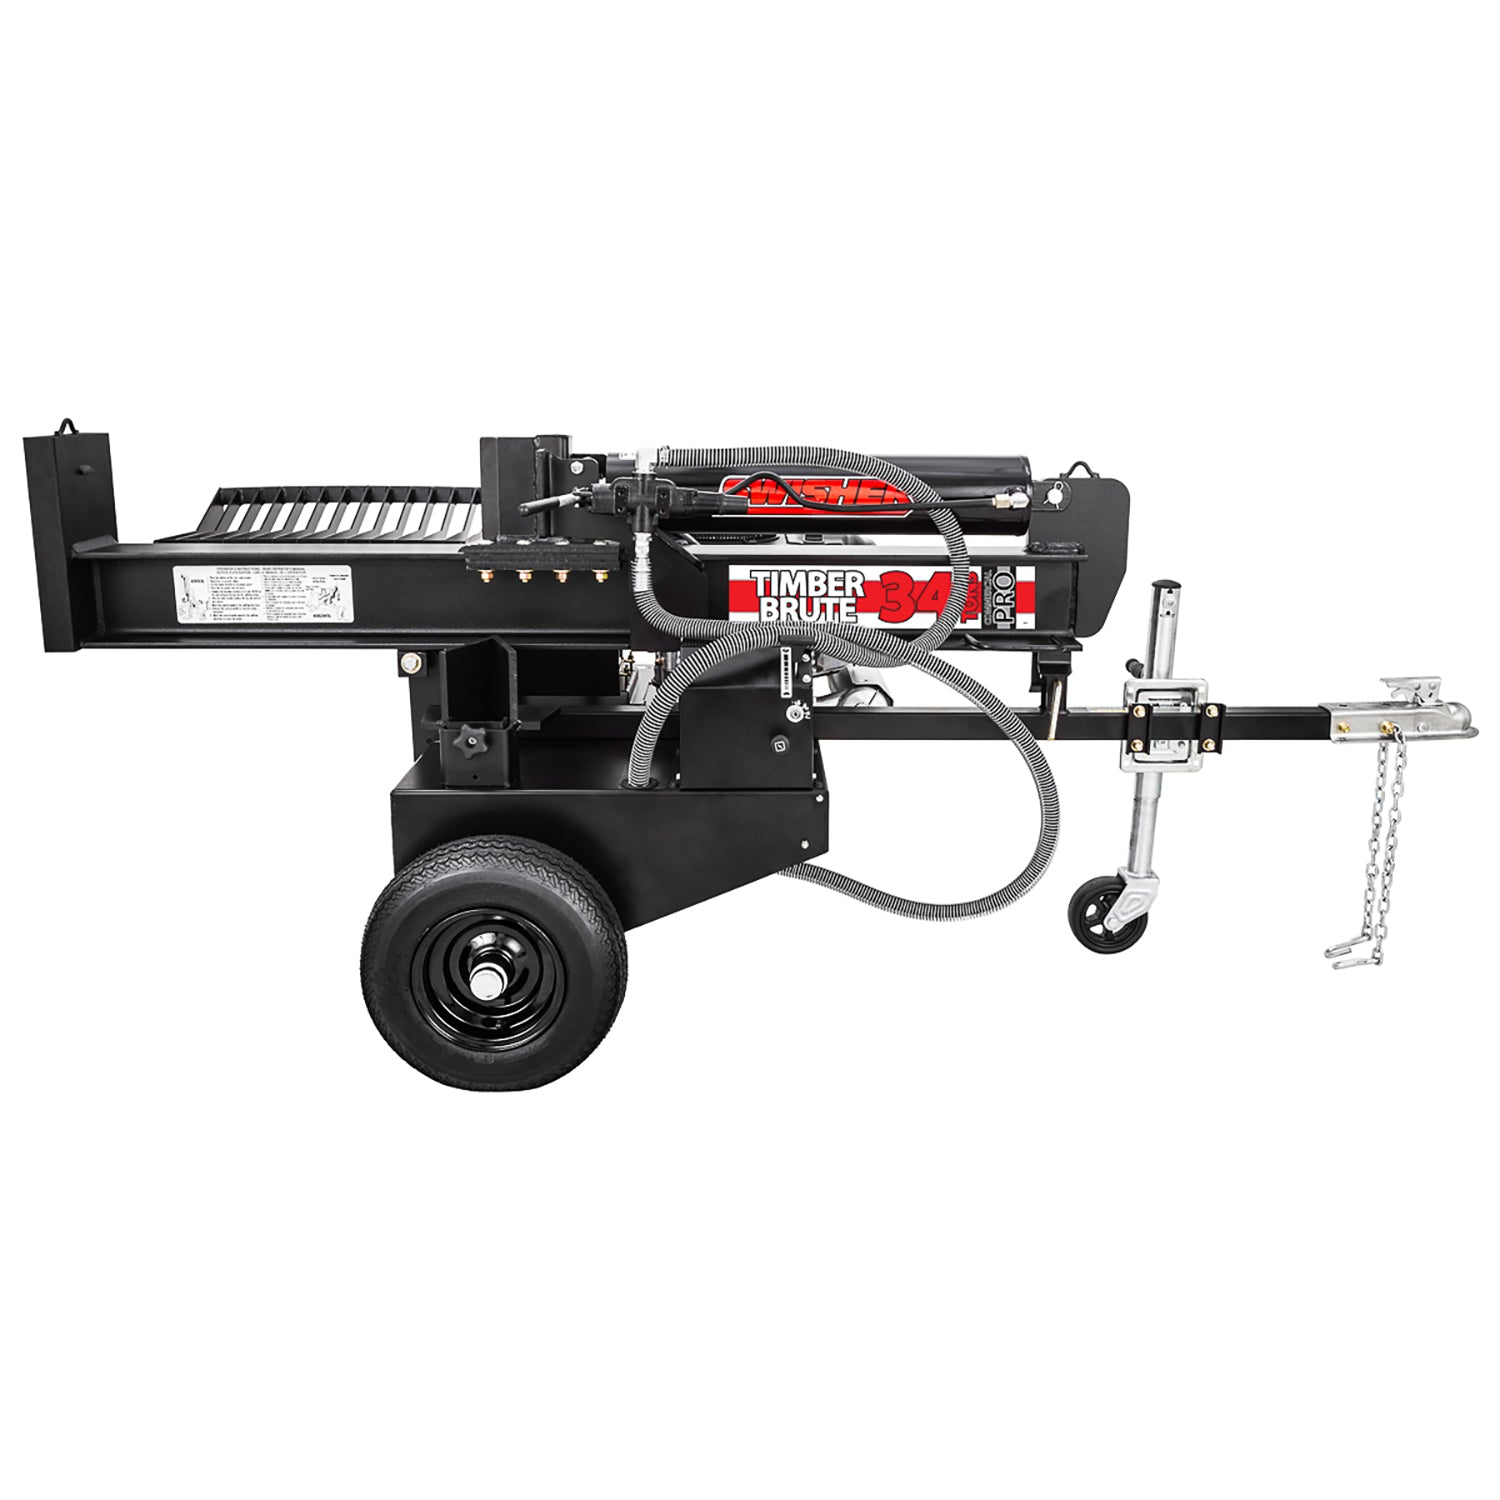 Swisher 34 Ton 14.5 HP Commercial Pro Gas Log Splitter - LSED14534 - Wood Splitter Outlet